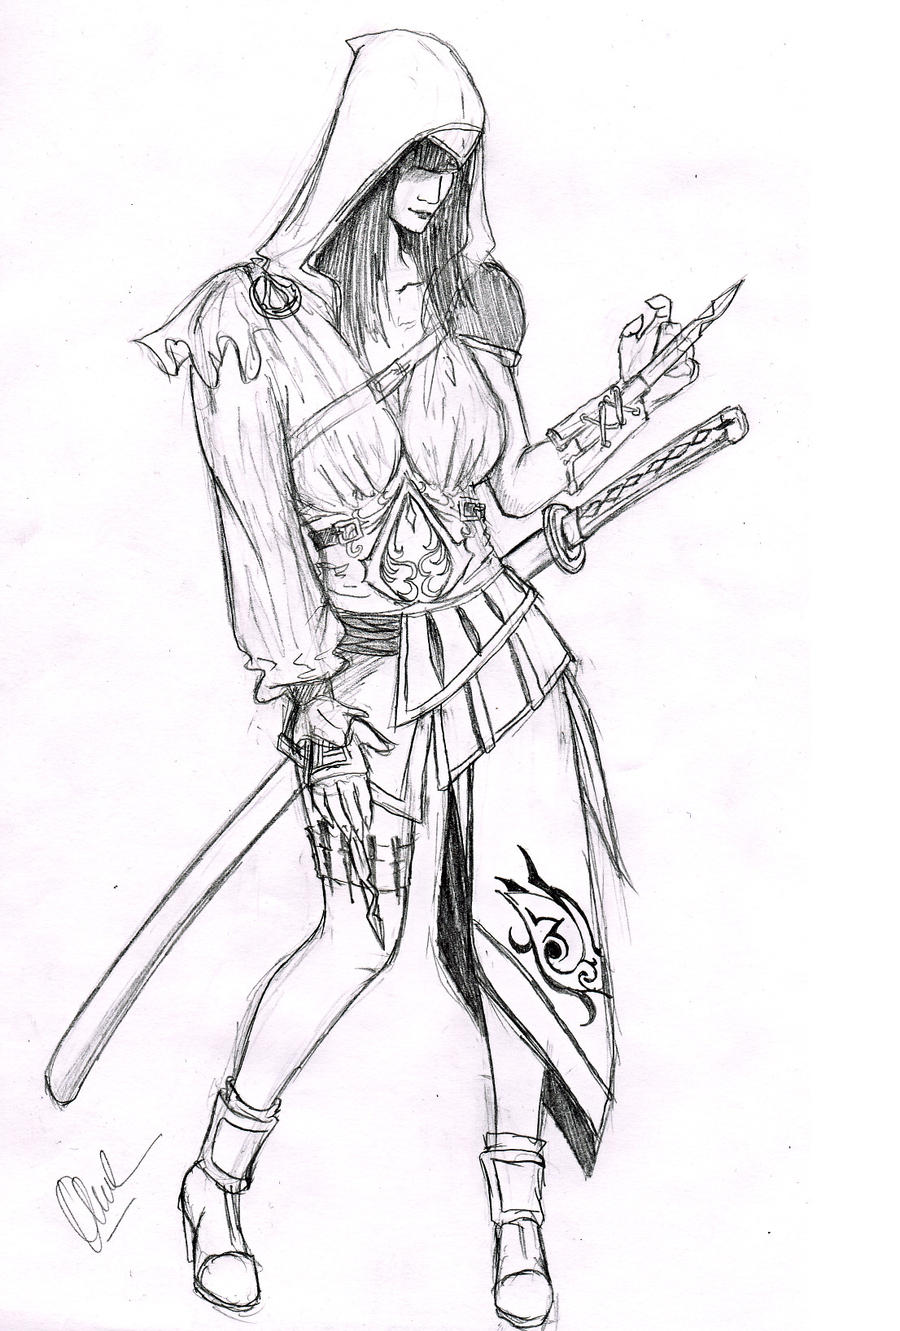 Anime Assassin Girl Drawing | www.imgkid.com - The Image ...